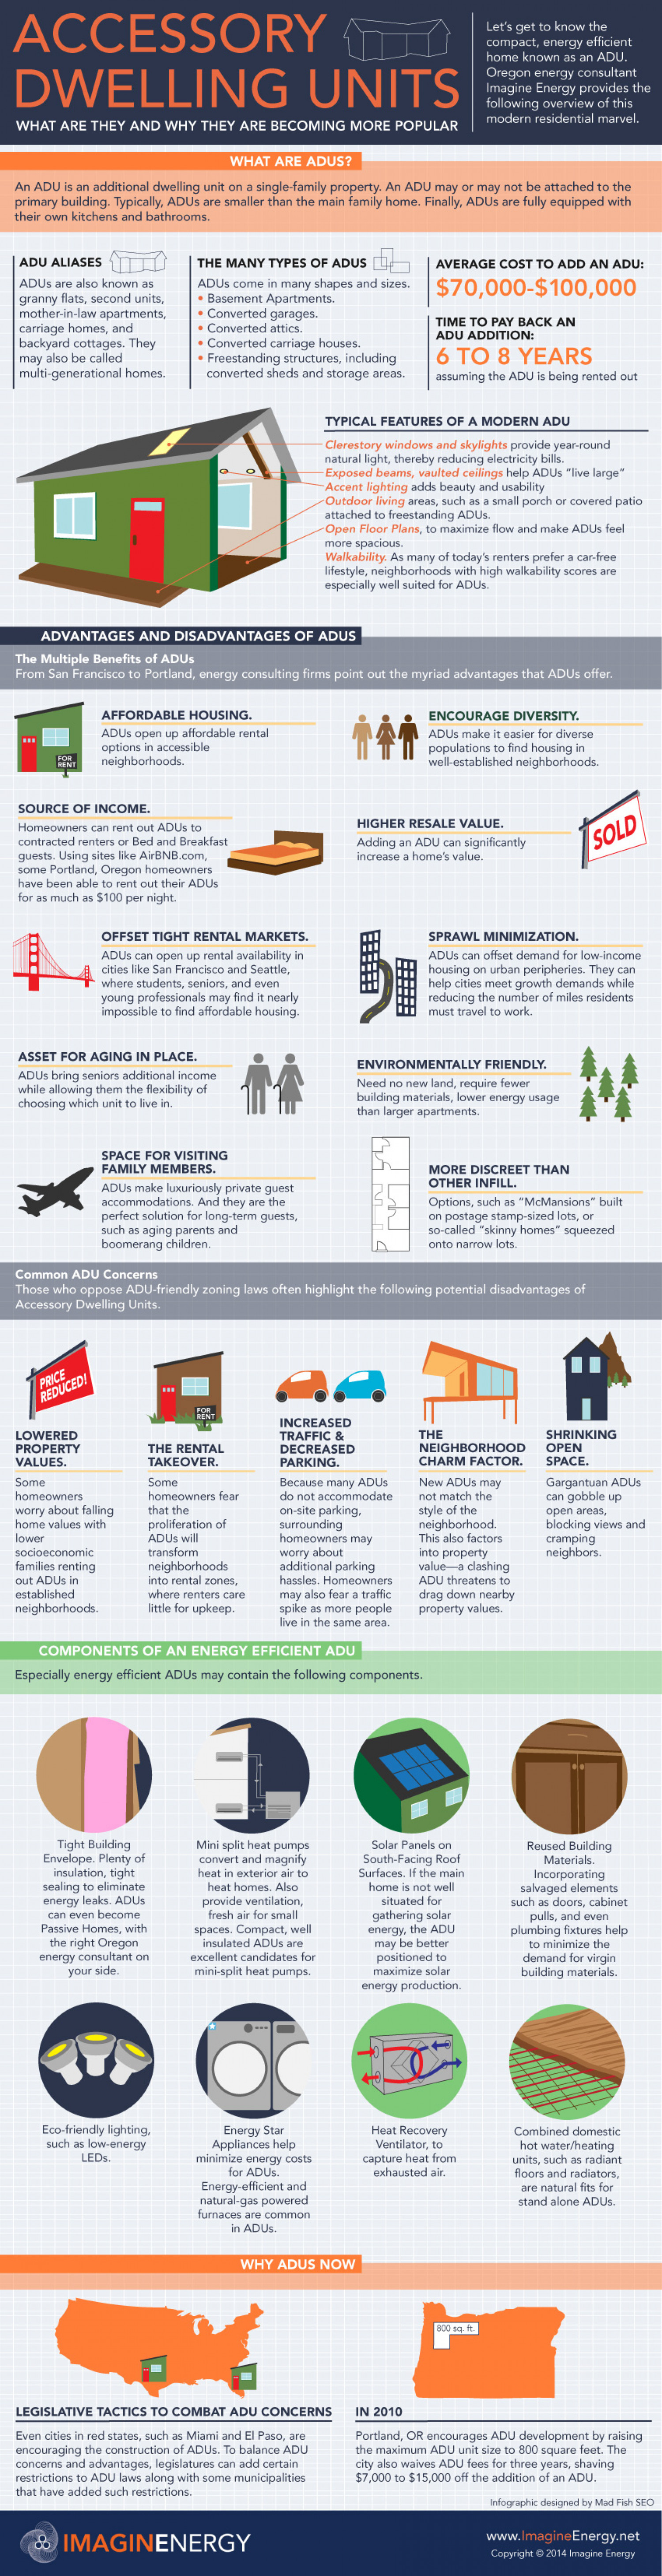 Accessory Dwelling Units: What They Are and Why They Are Becoming More Popular  Infographic